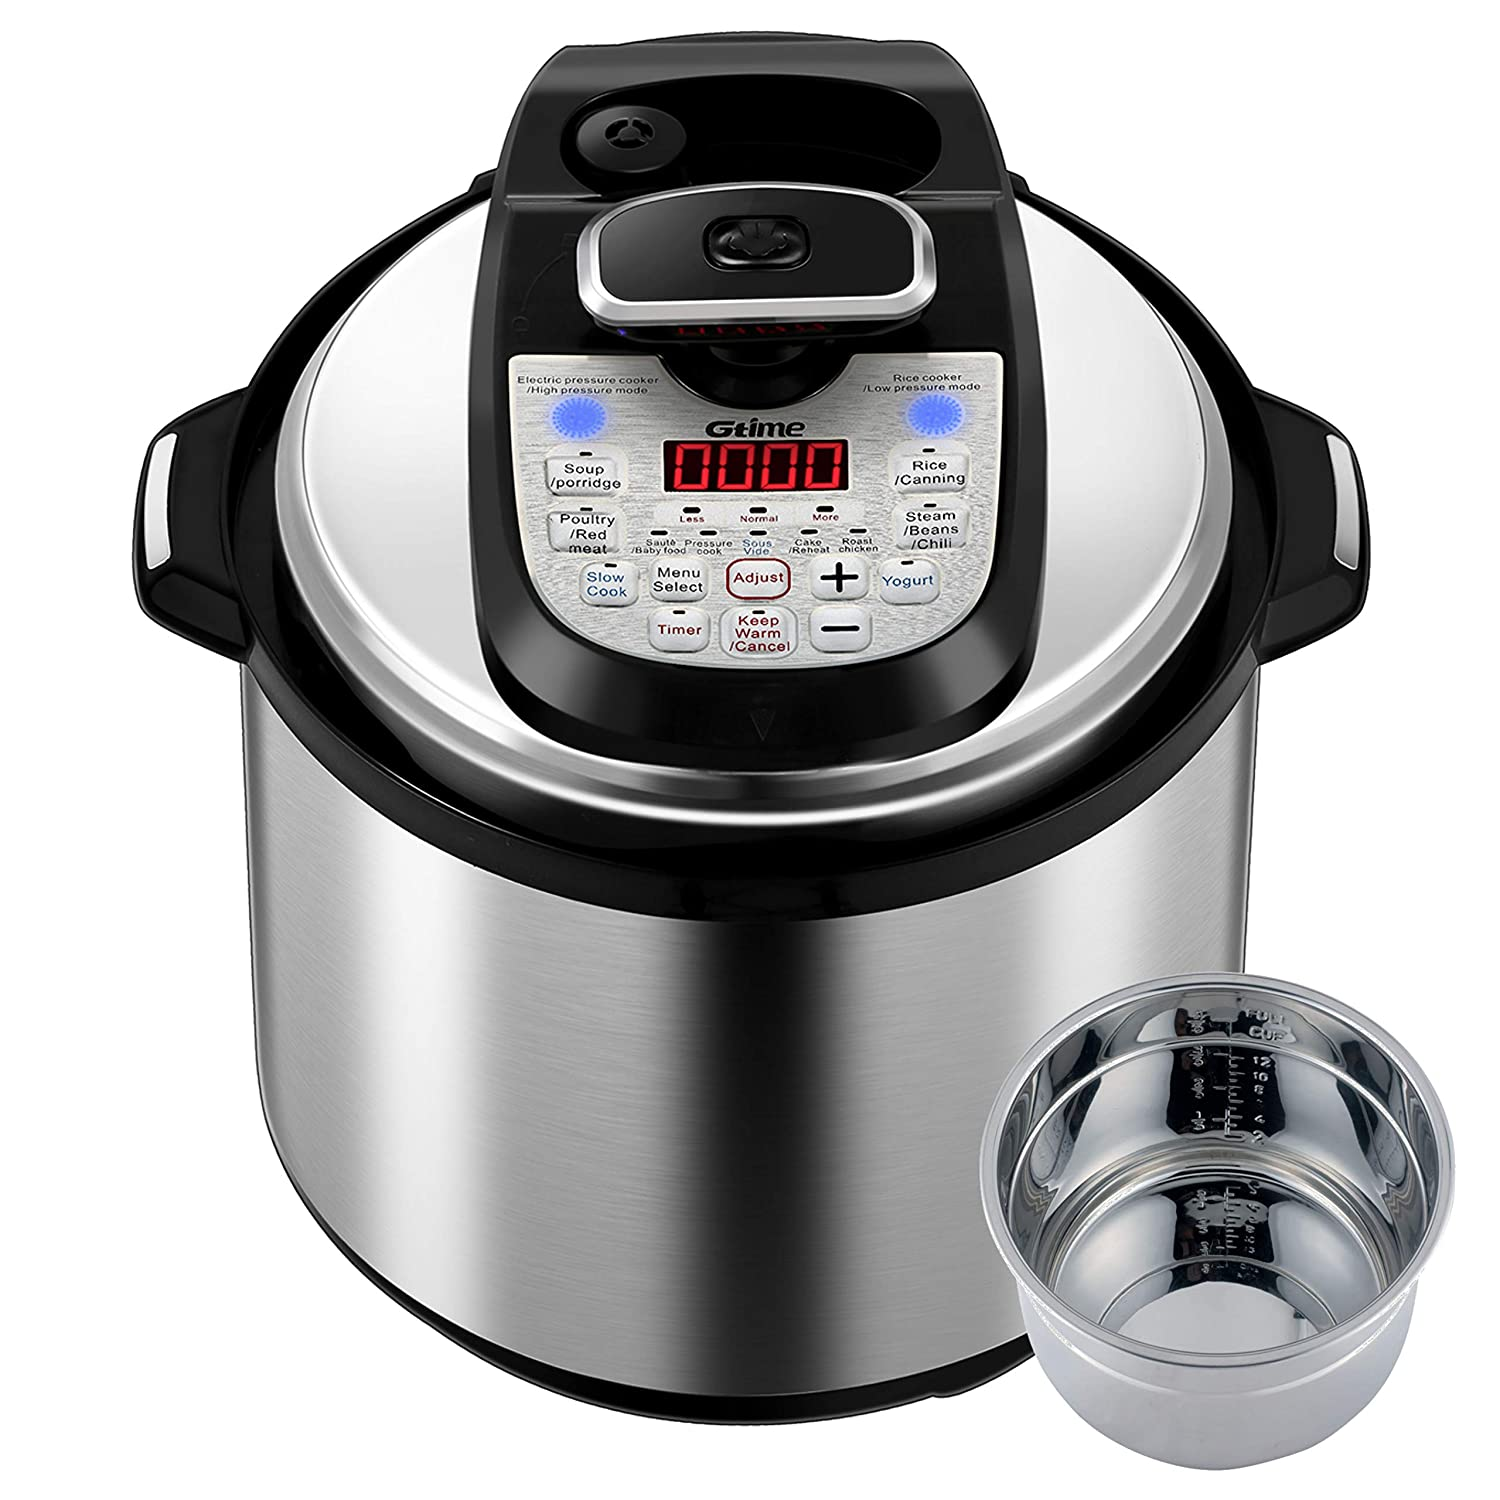 Gtime Multi-Cooker 18-in-1 Programmable Pressure Cooker 6 Quarts with Stainless Steel Pot, Steamer Basket, Pressure cook, Slow cook, Sauté, Rice cooker, Yogurt, Steam